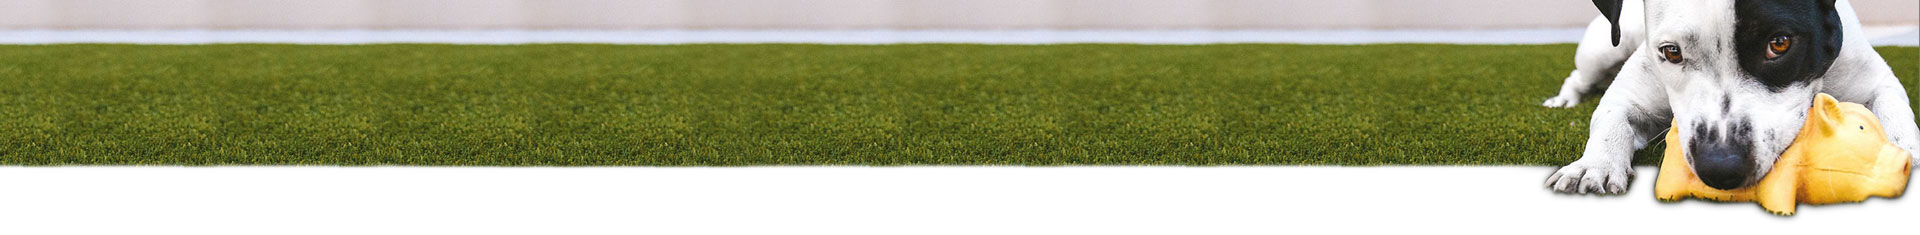 Residential Artificial Grass FAQ